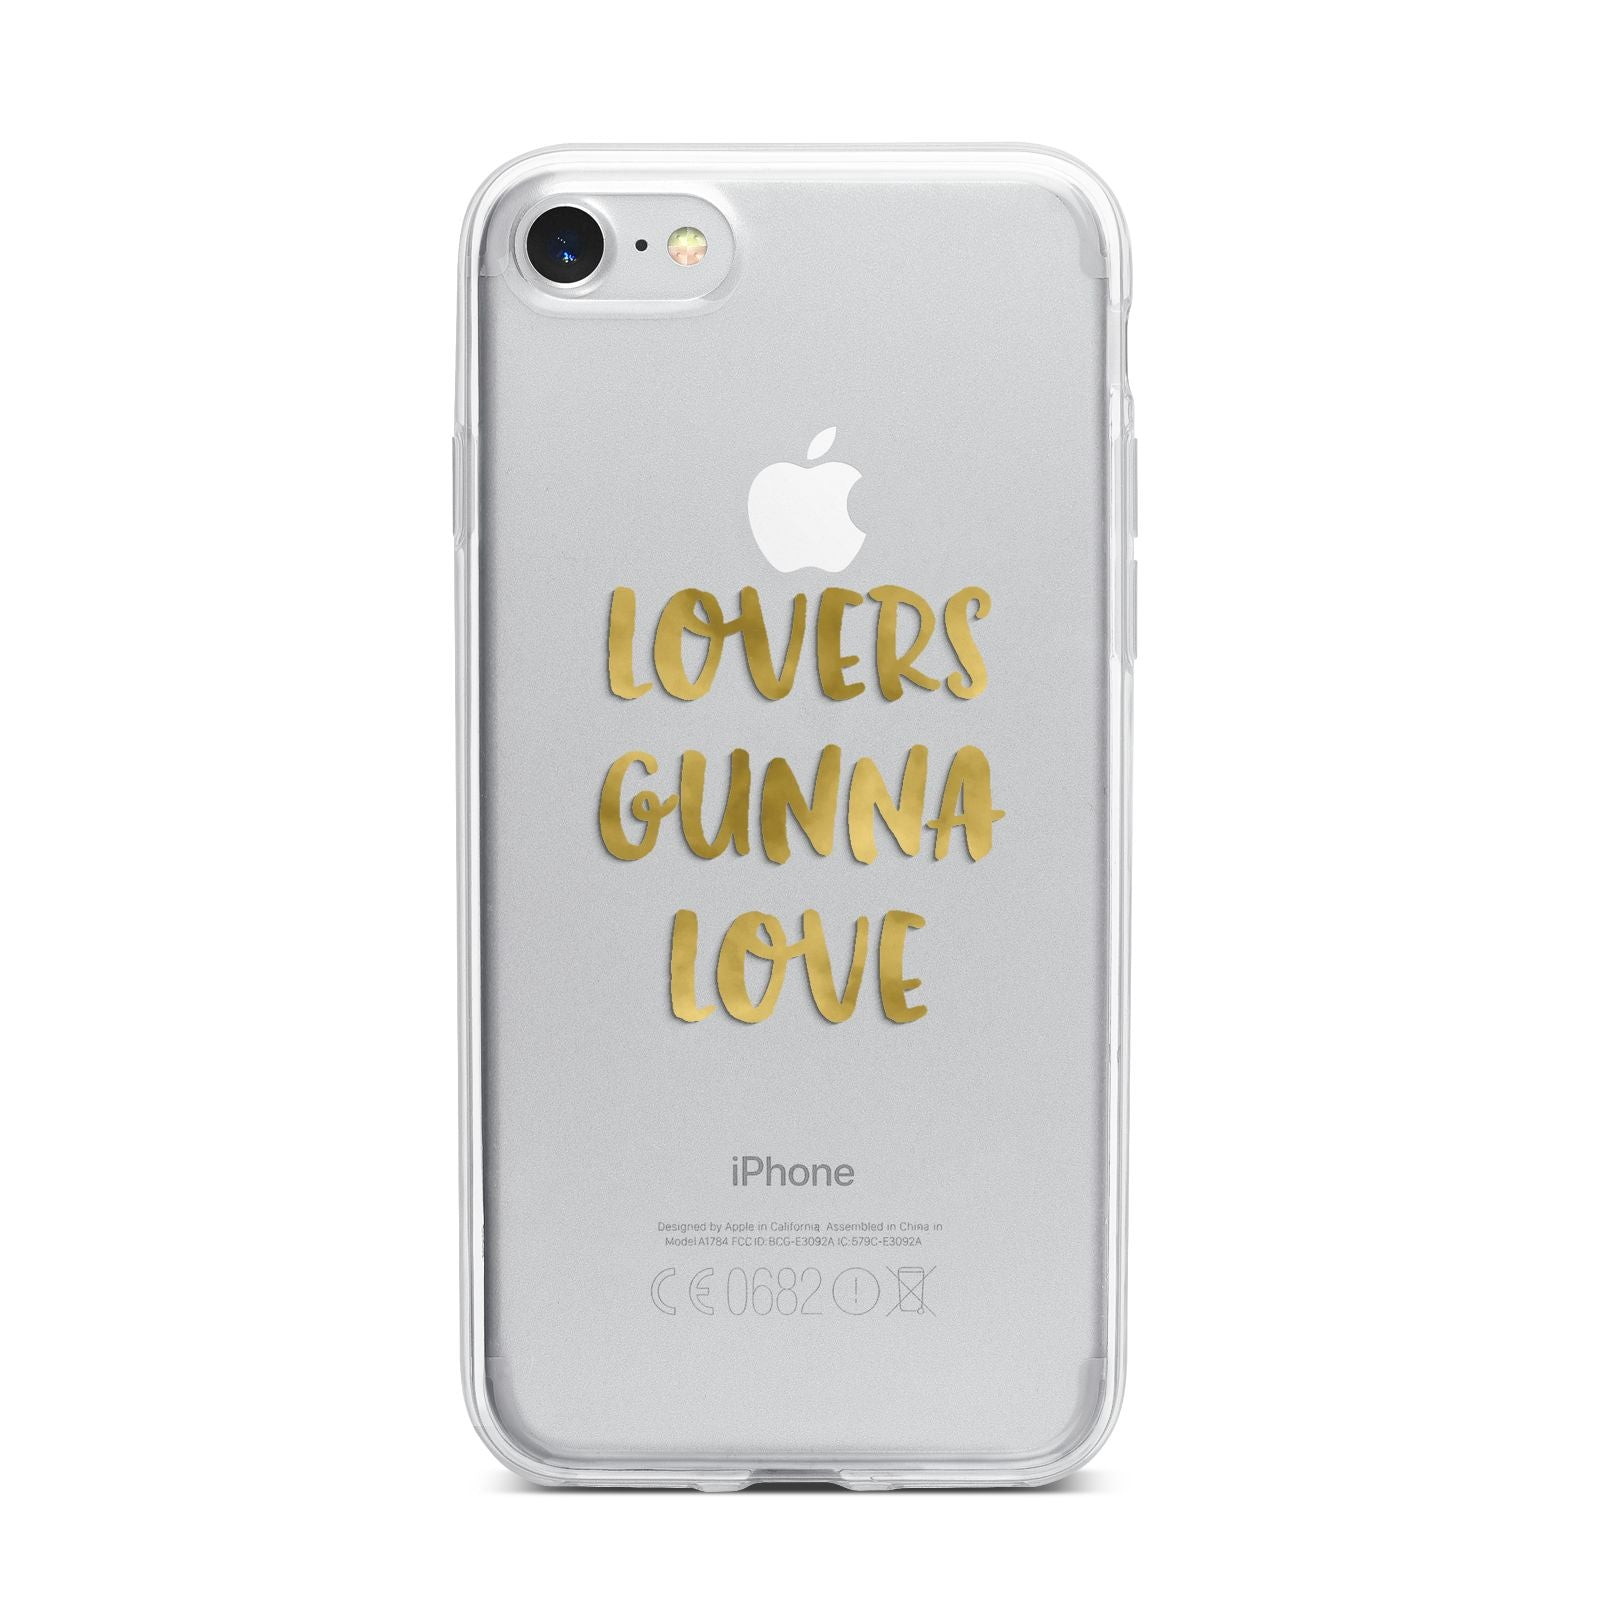 Lovers Gunna Love Real Gold Foil iPhone 7 Bumper Case on Silver iPhone